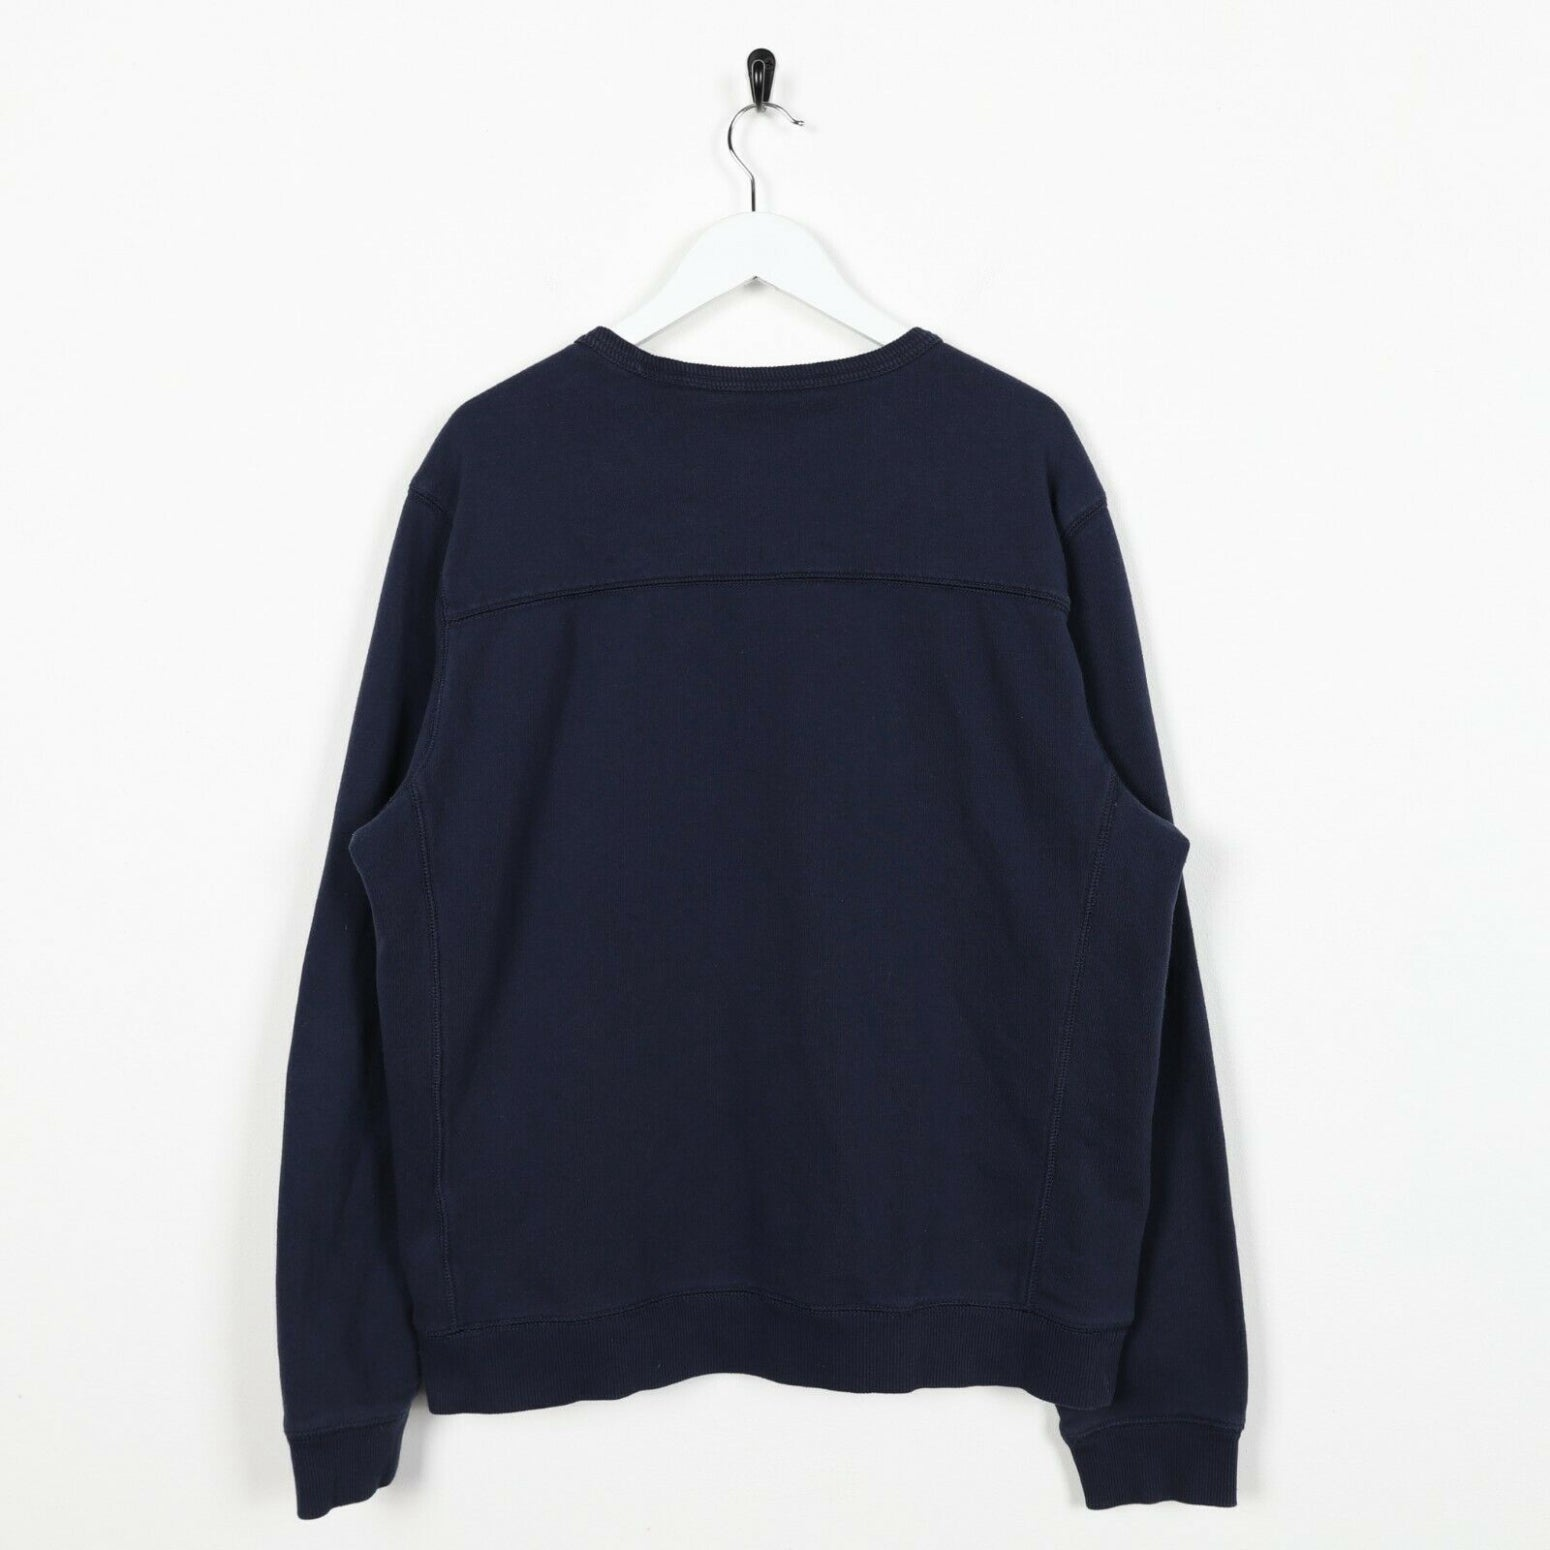 Vintage TIMBERLAND Small Logo Sweatshirt Jumper Navy Blue Large L